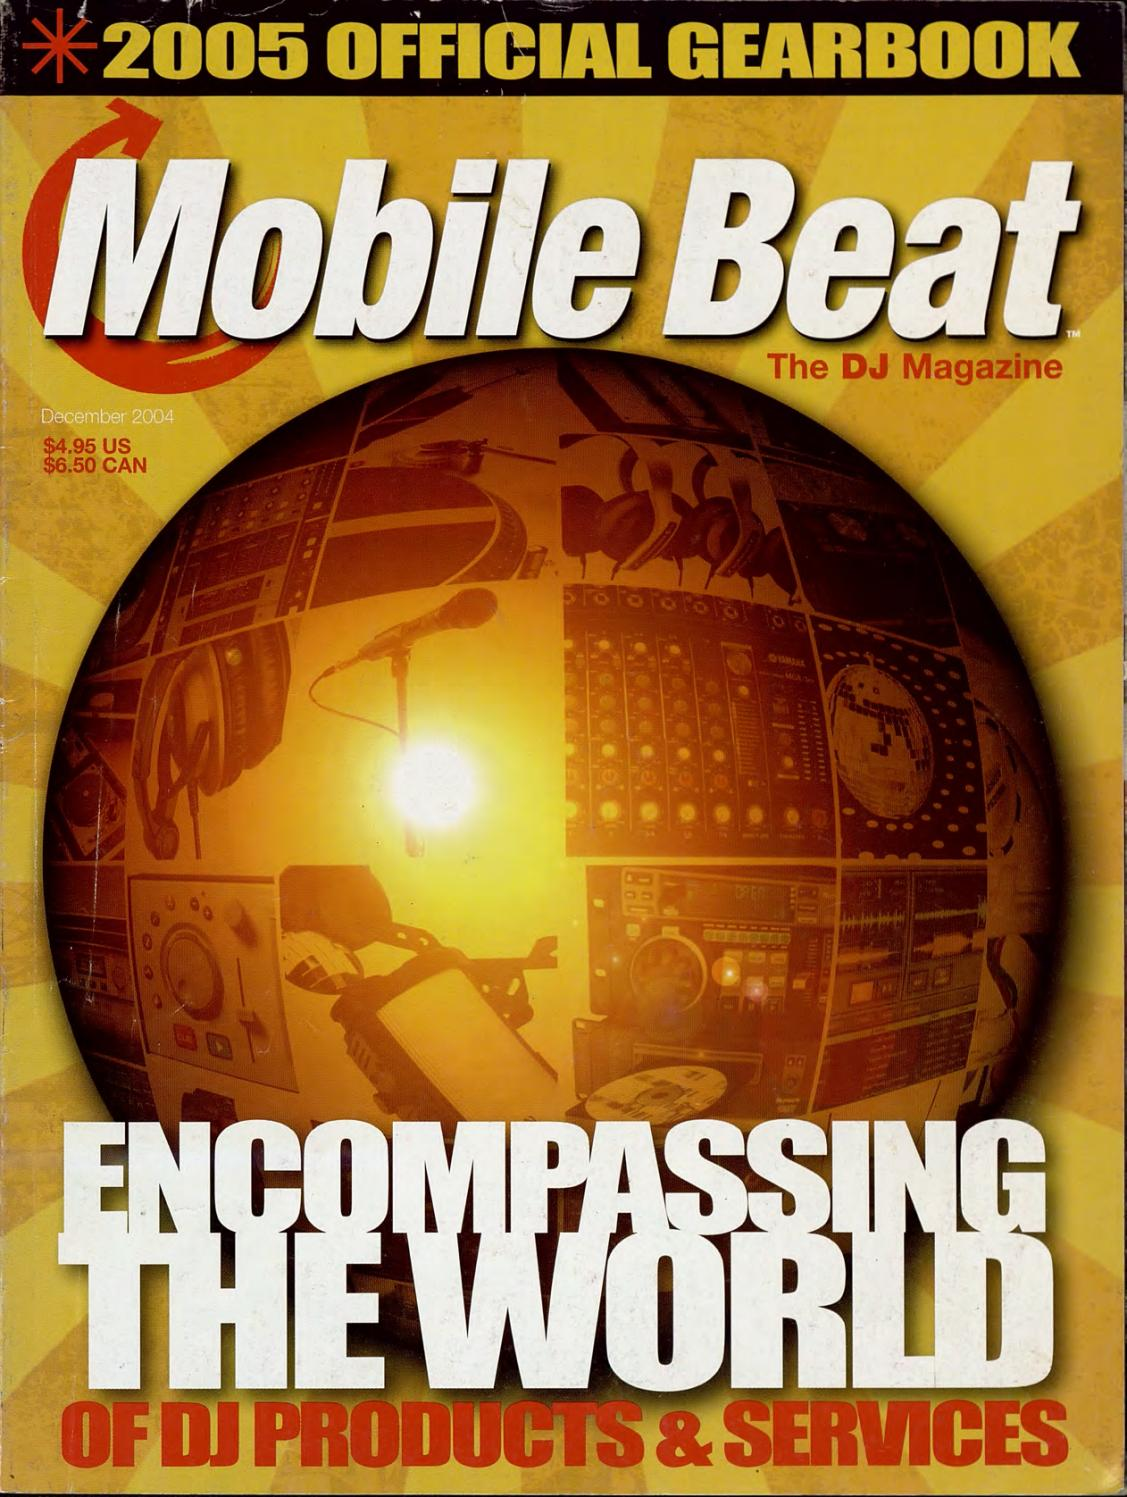 Issue 091 December 2004 Encompassing The World Of Dj Products Ocl Audio Power Amplifier Circuit Production Suite Entrance Diy Kit Services By Mobile Beat Magazine Issuu